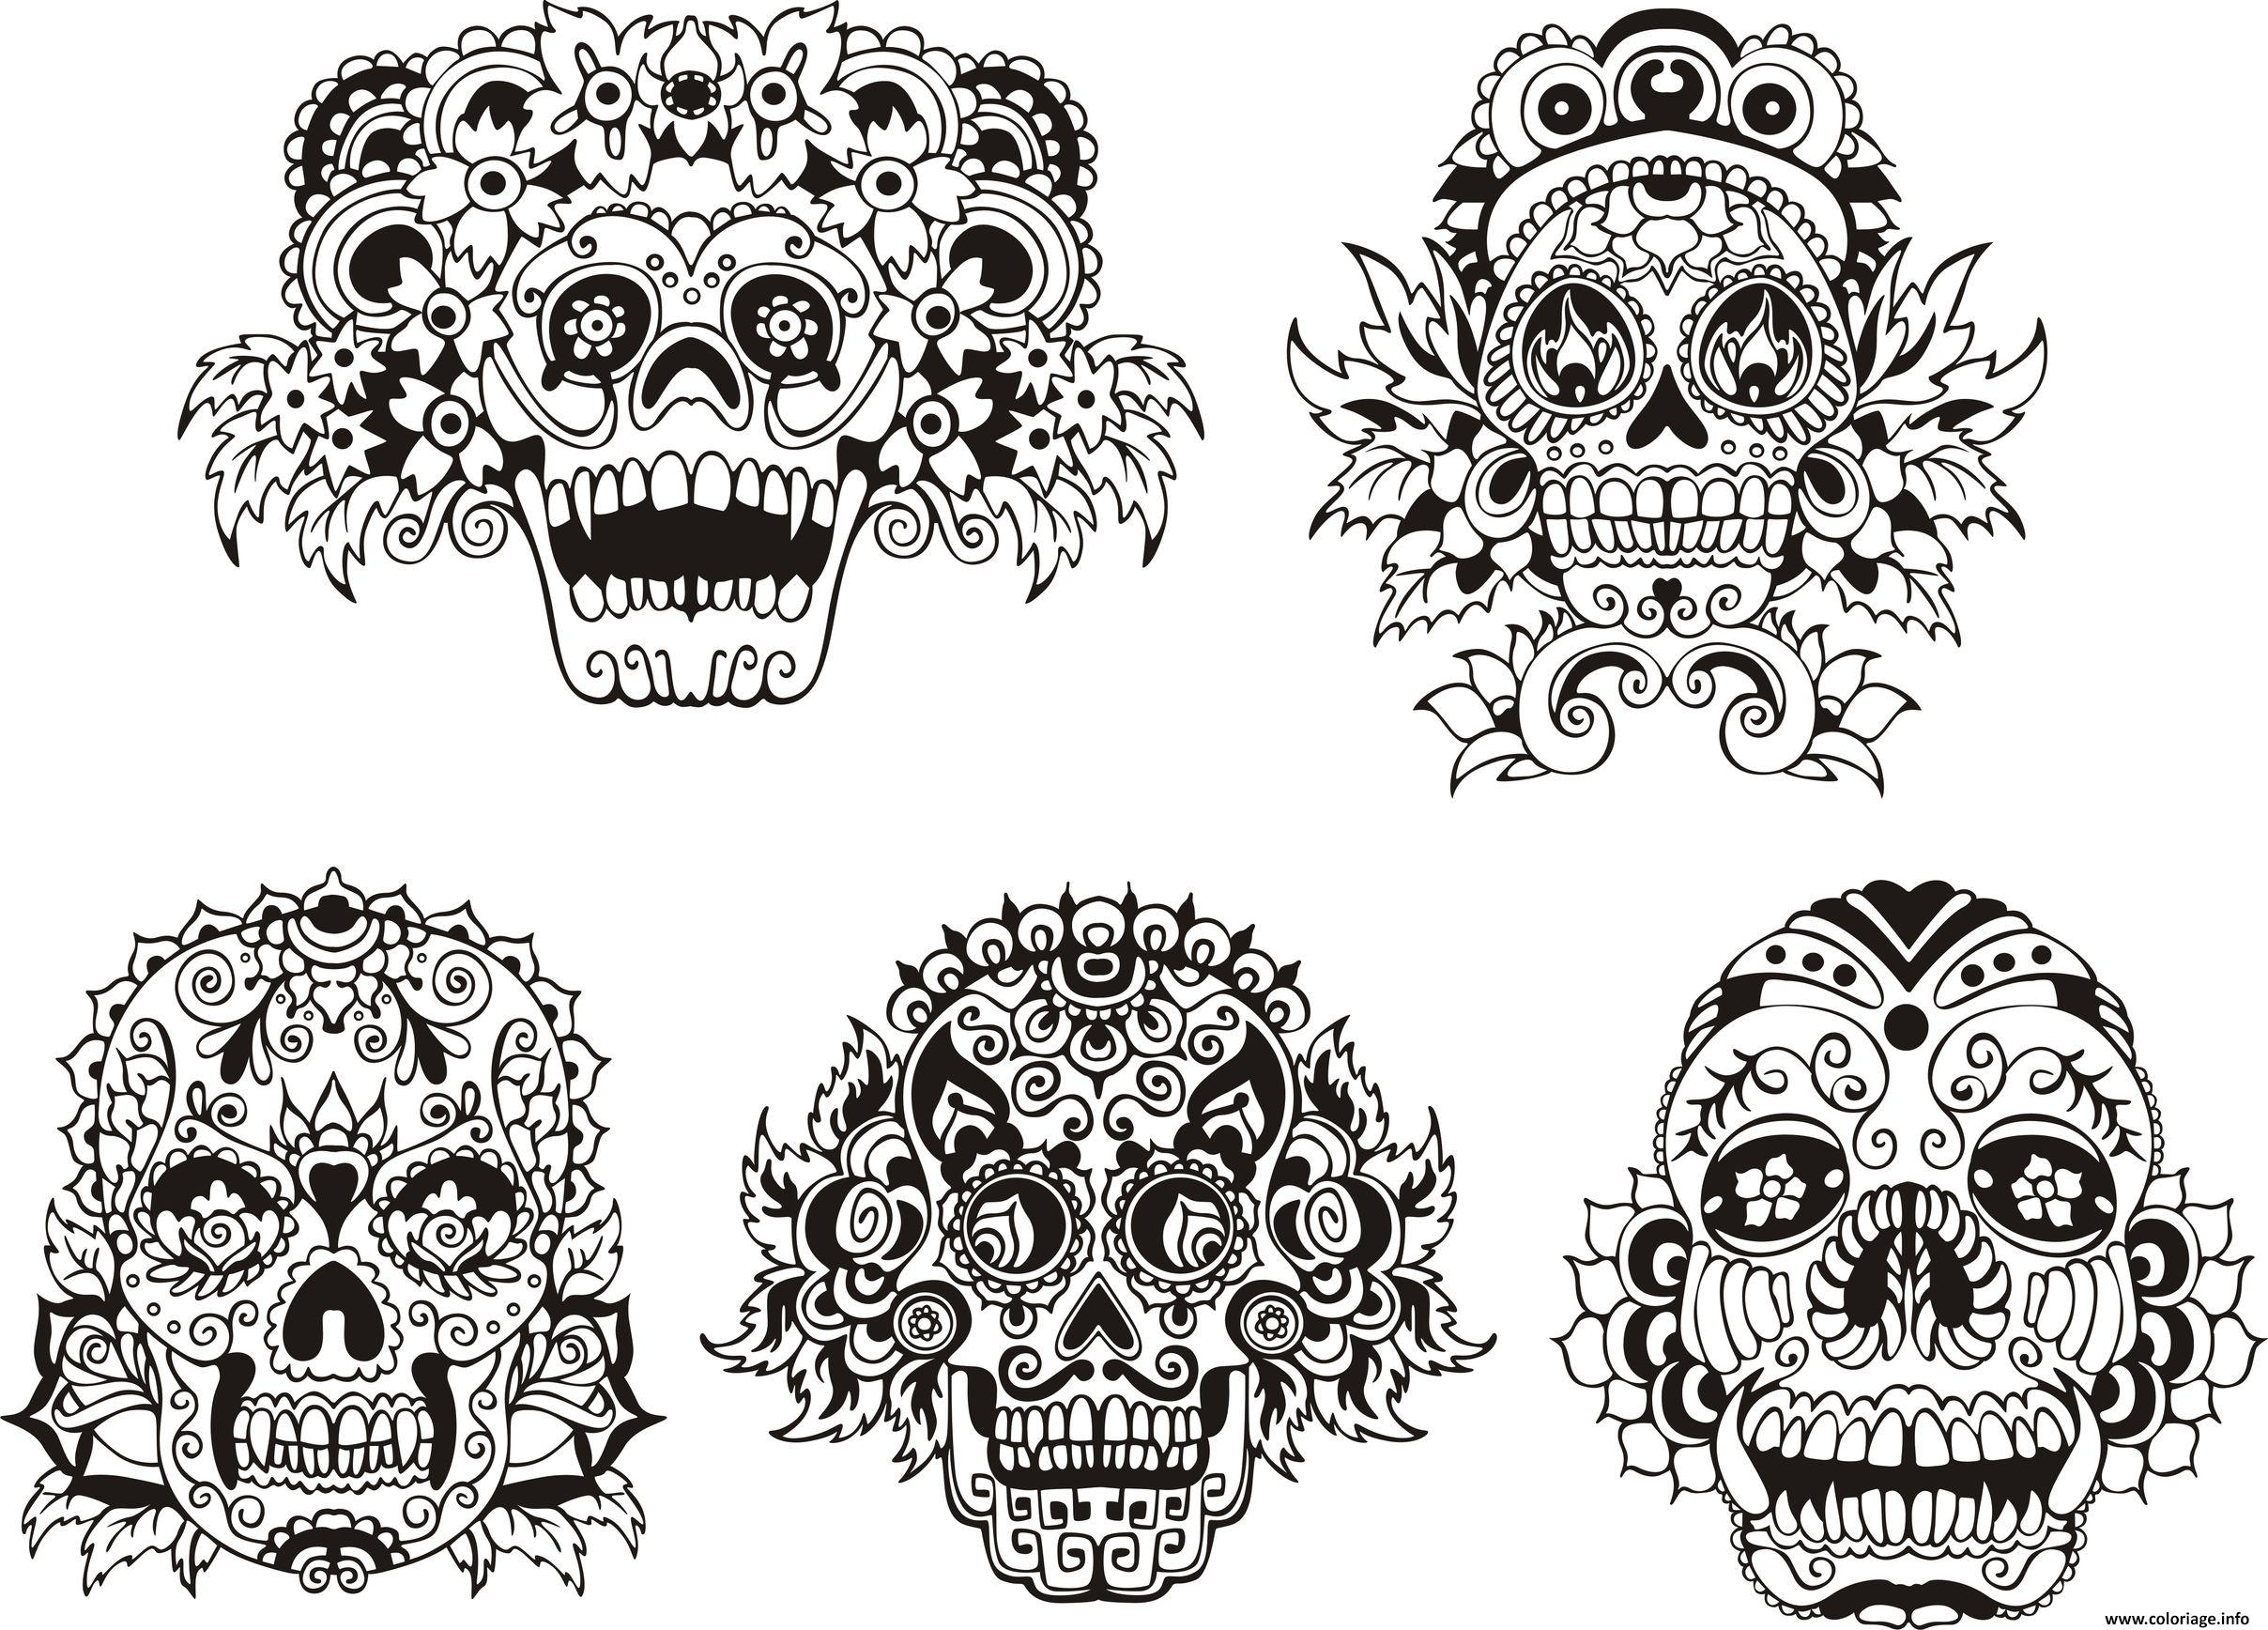 Coloriage adulte tatouage calavera - Dessin a colorier adulte ...